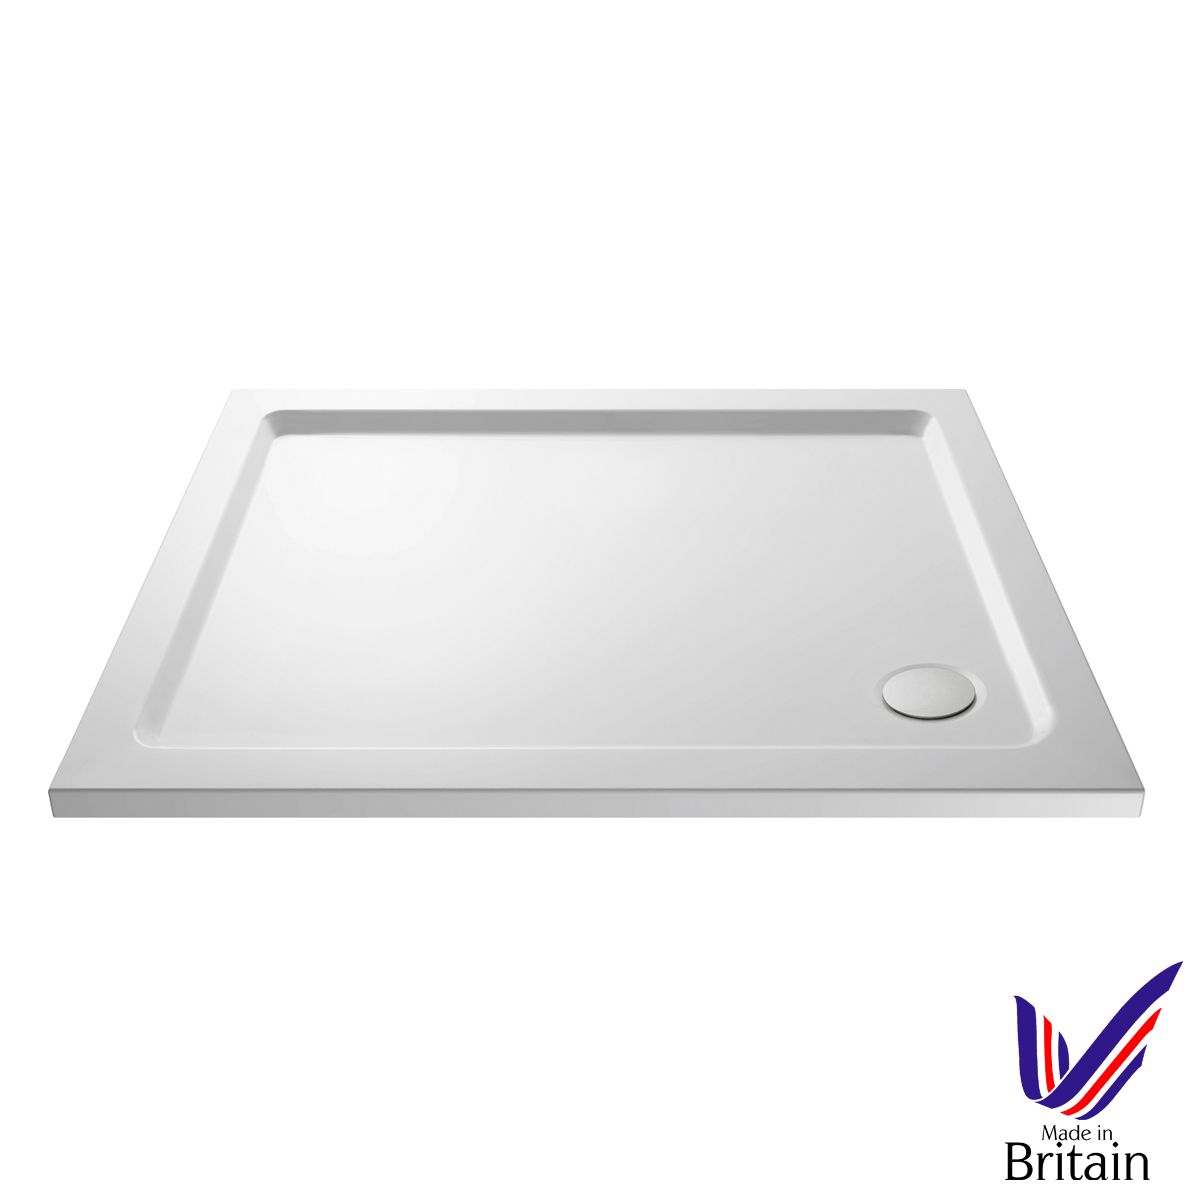 1100 x 800 Shower Tray Rectangular Low Profile by Pearlstone